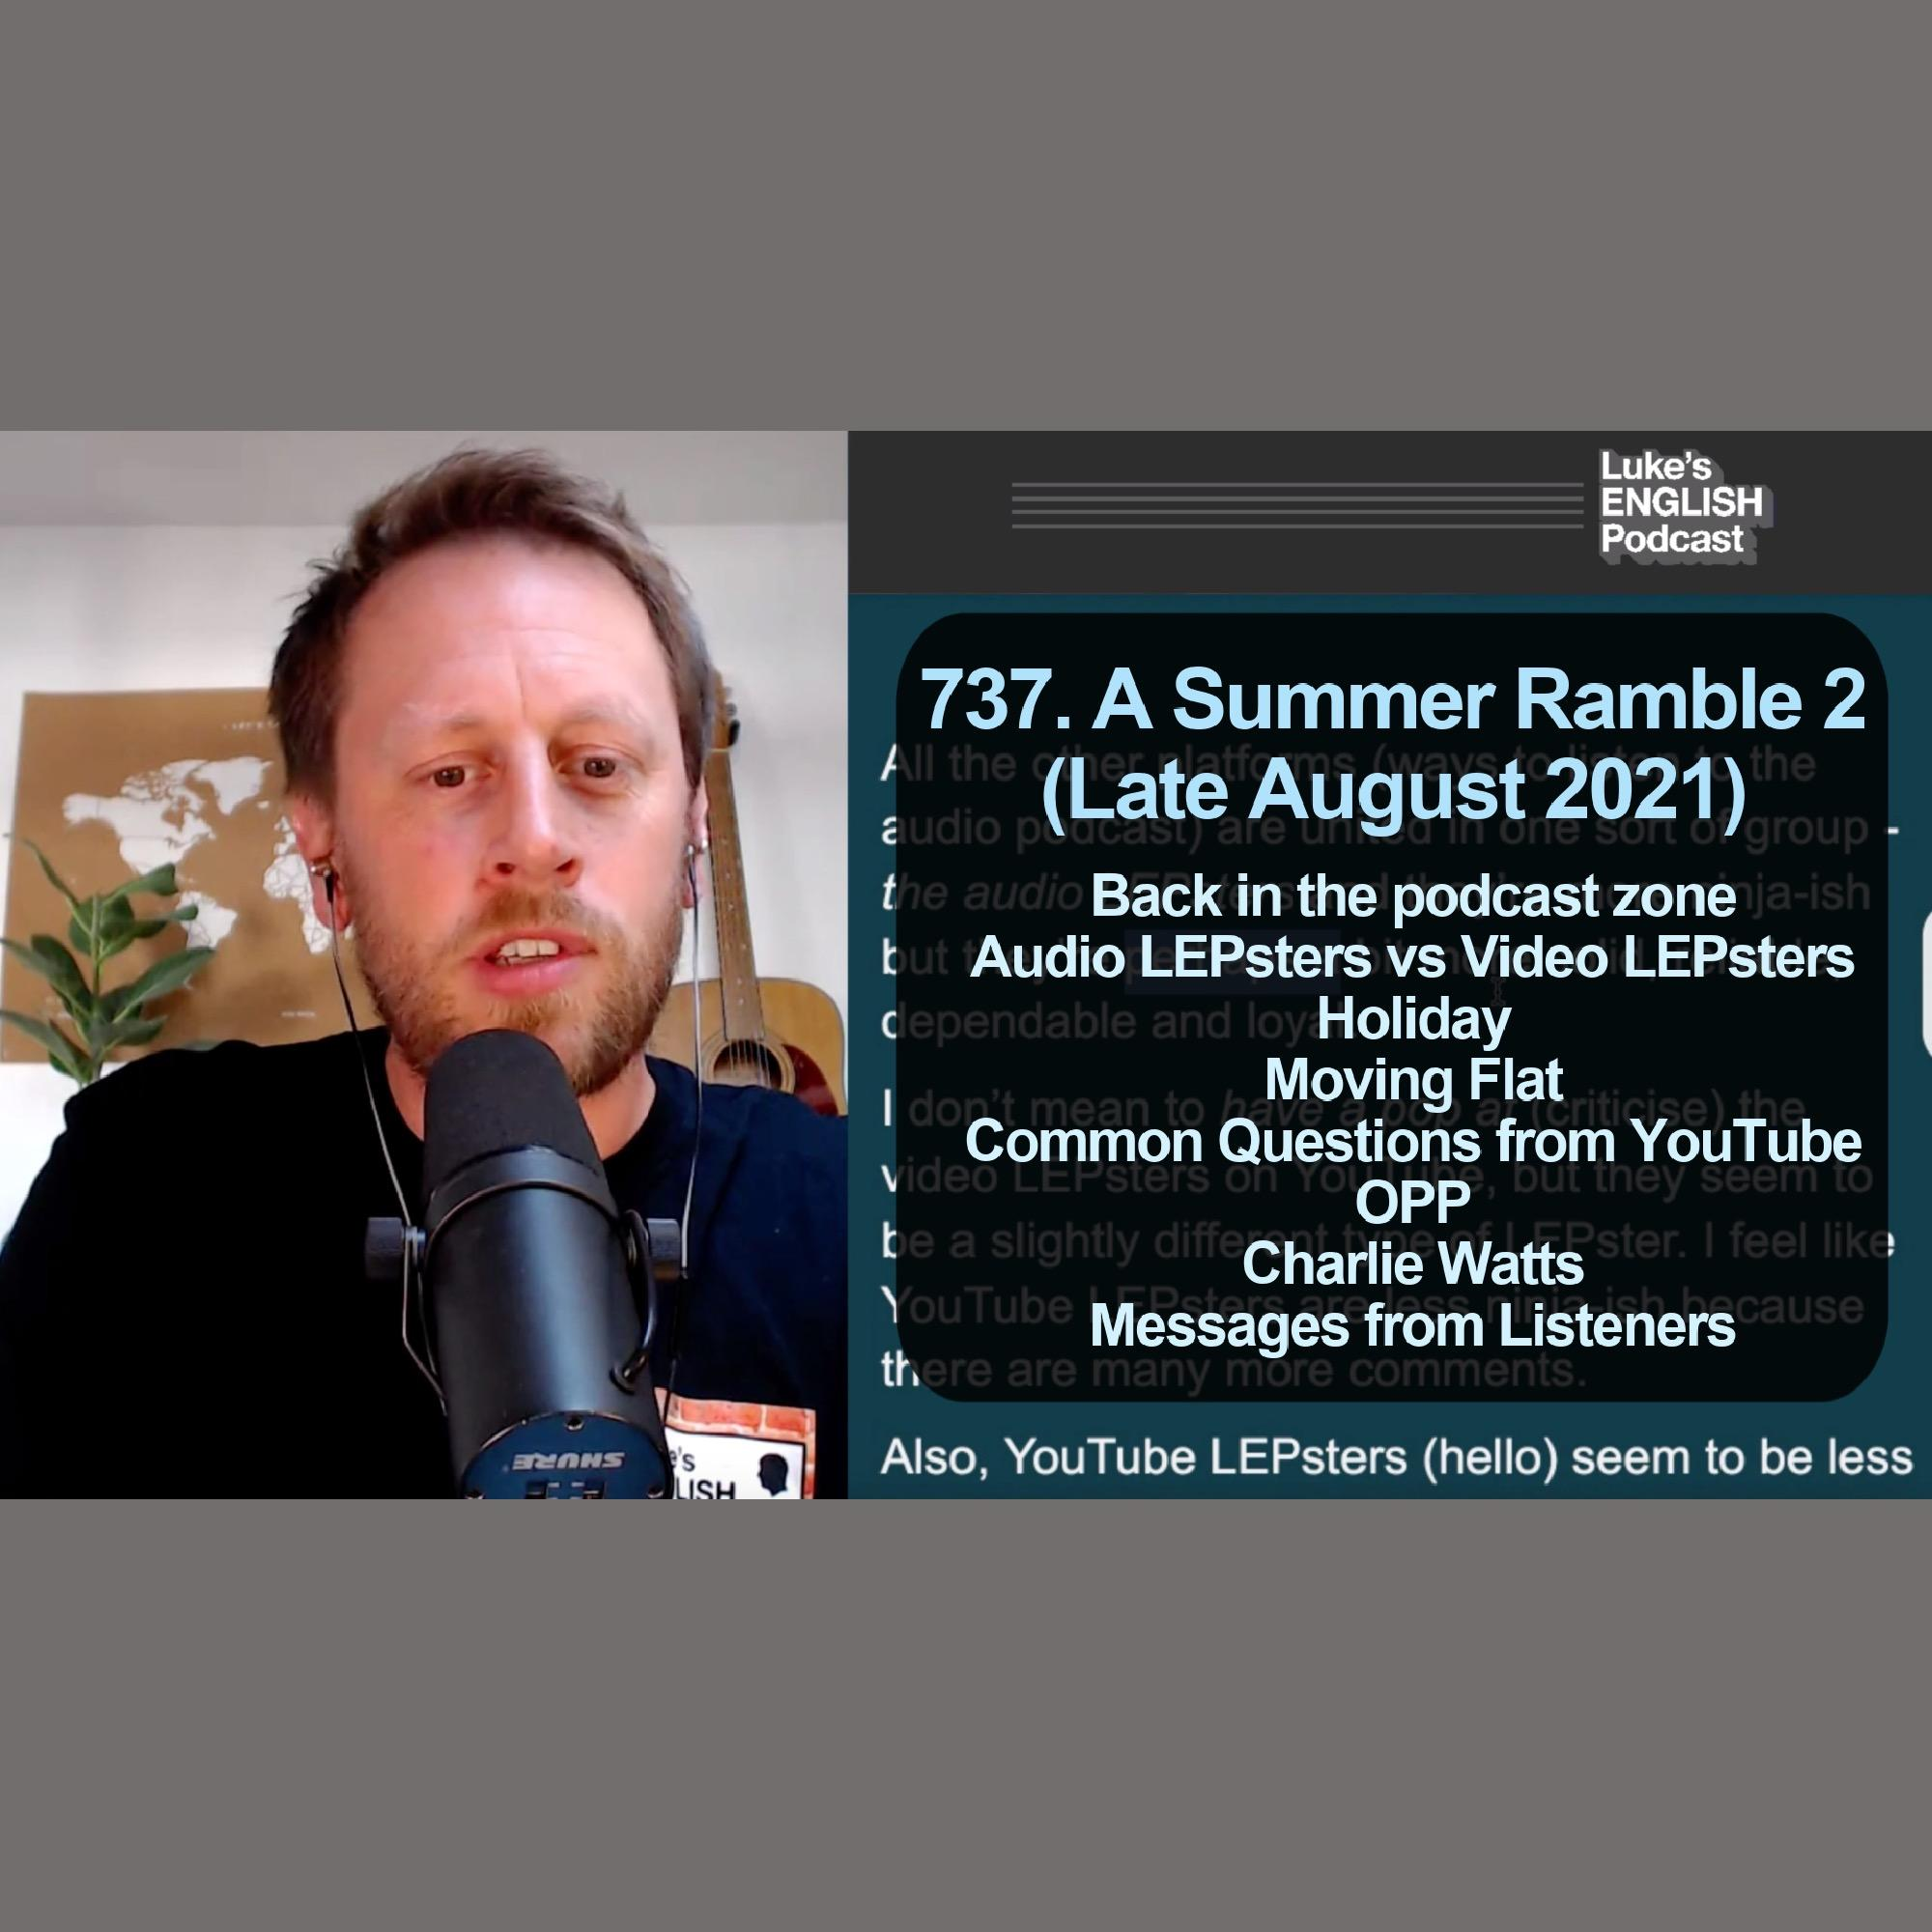 737. A Summer Ramble 2 (Late August 2021)